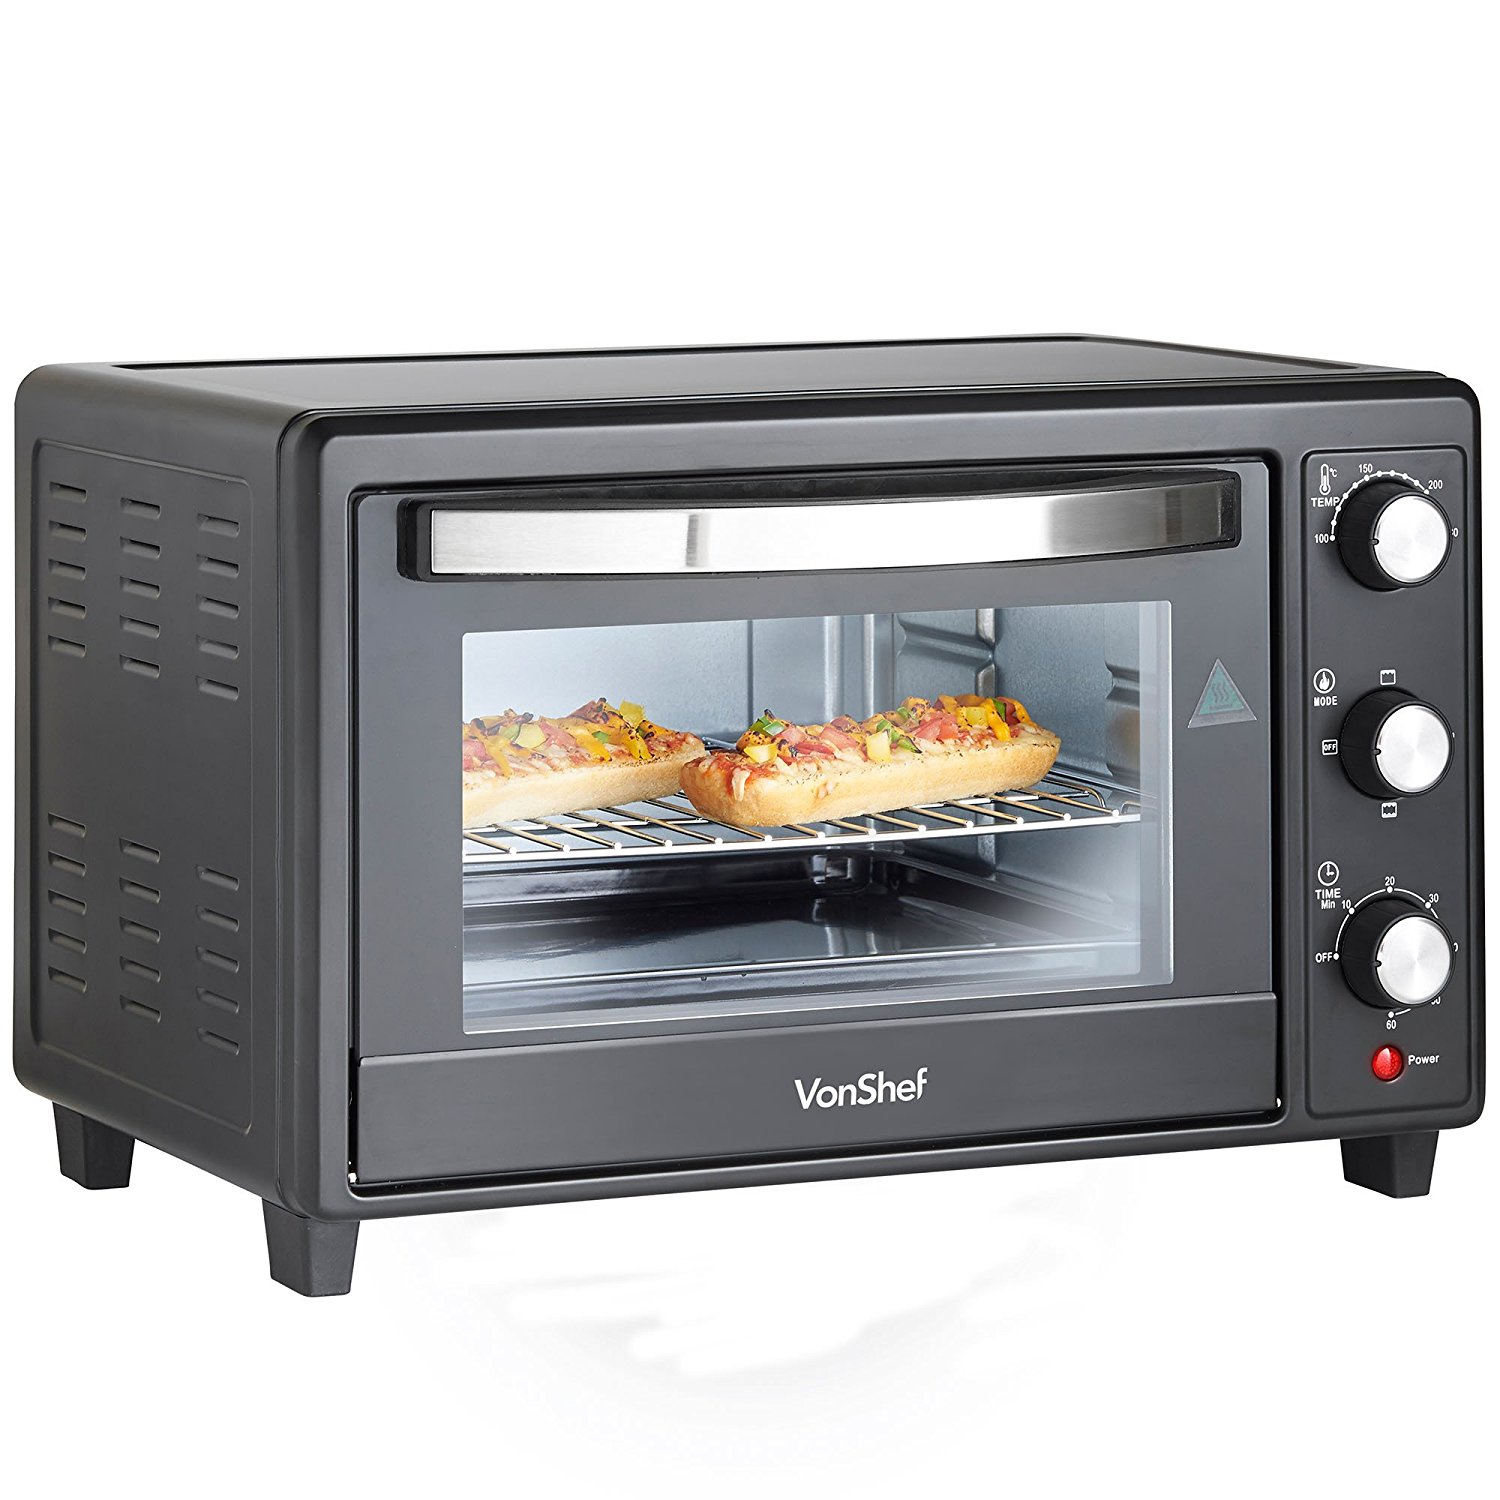 Vonshef 220 volts 30 Liter Toaster Oven with Convection Grill 220 240 volt  50 hz 13216